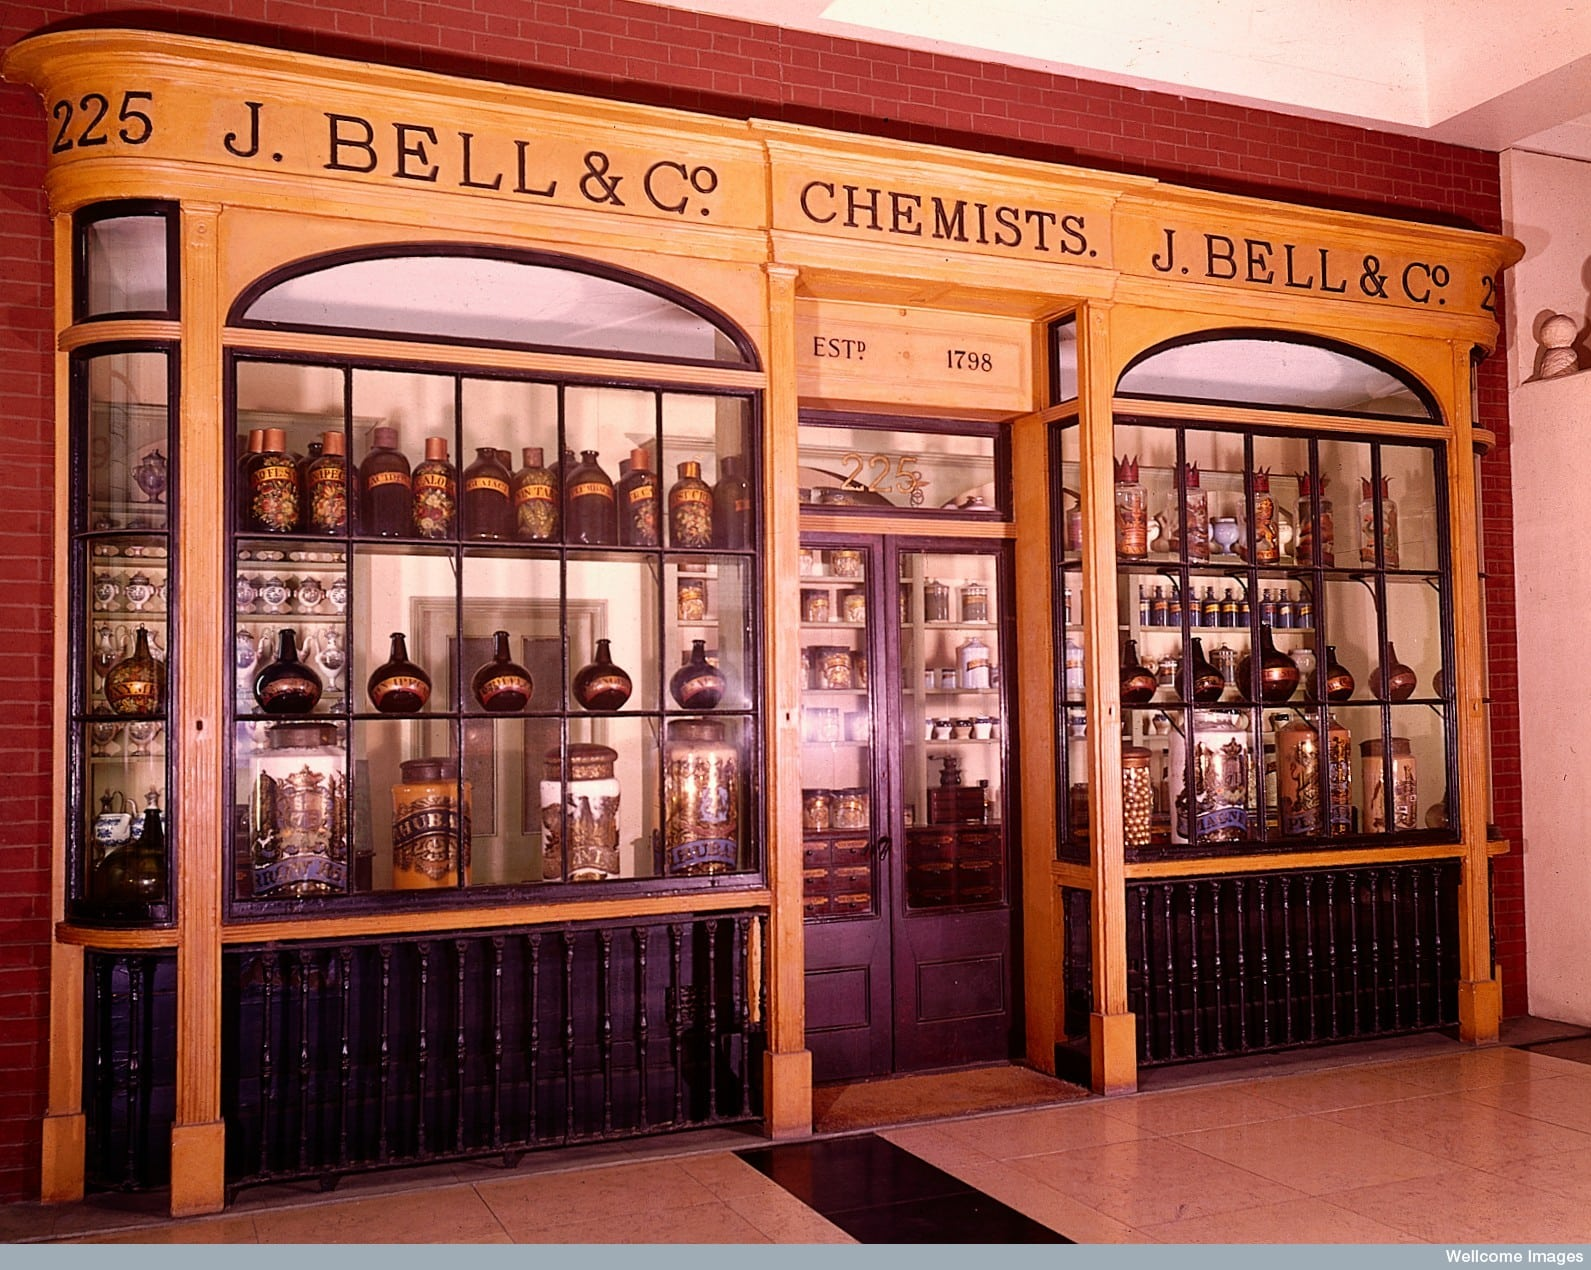 Reconstruction of J. Bell & Co pharmacy in the Wellcome Building, London.